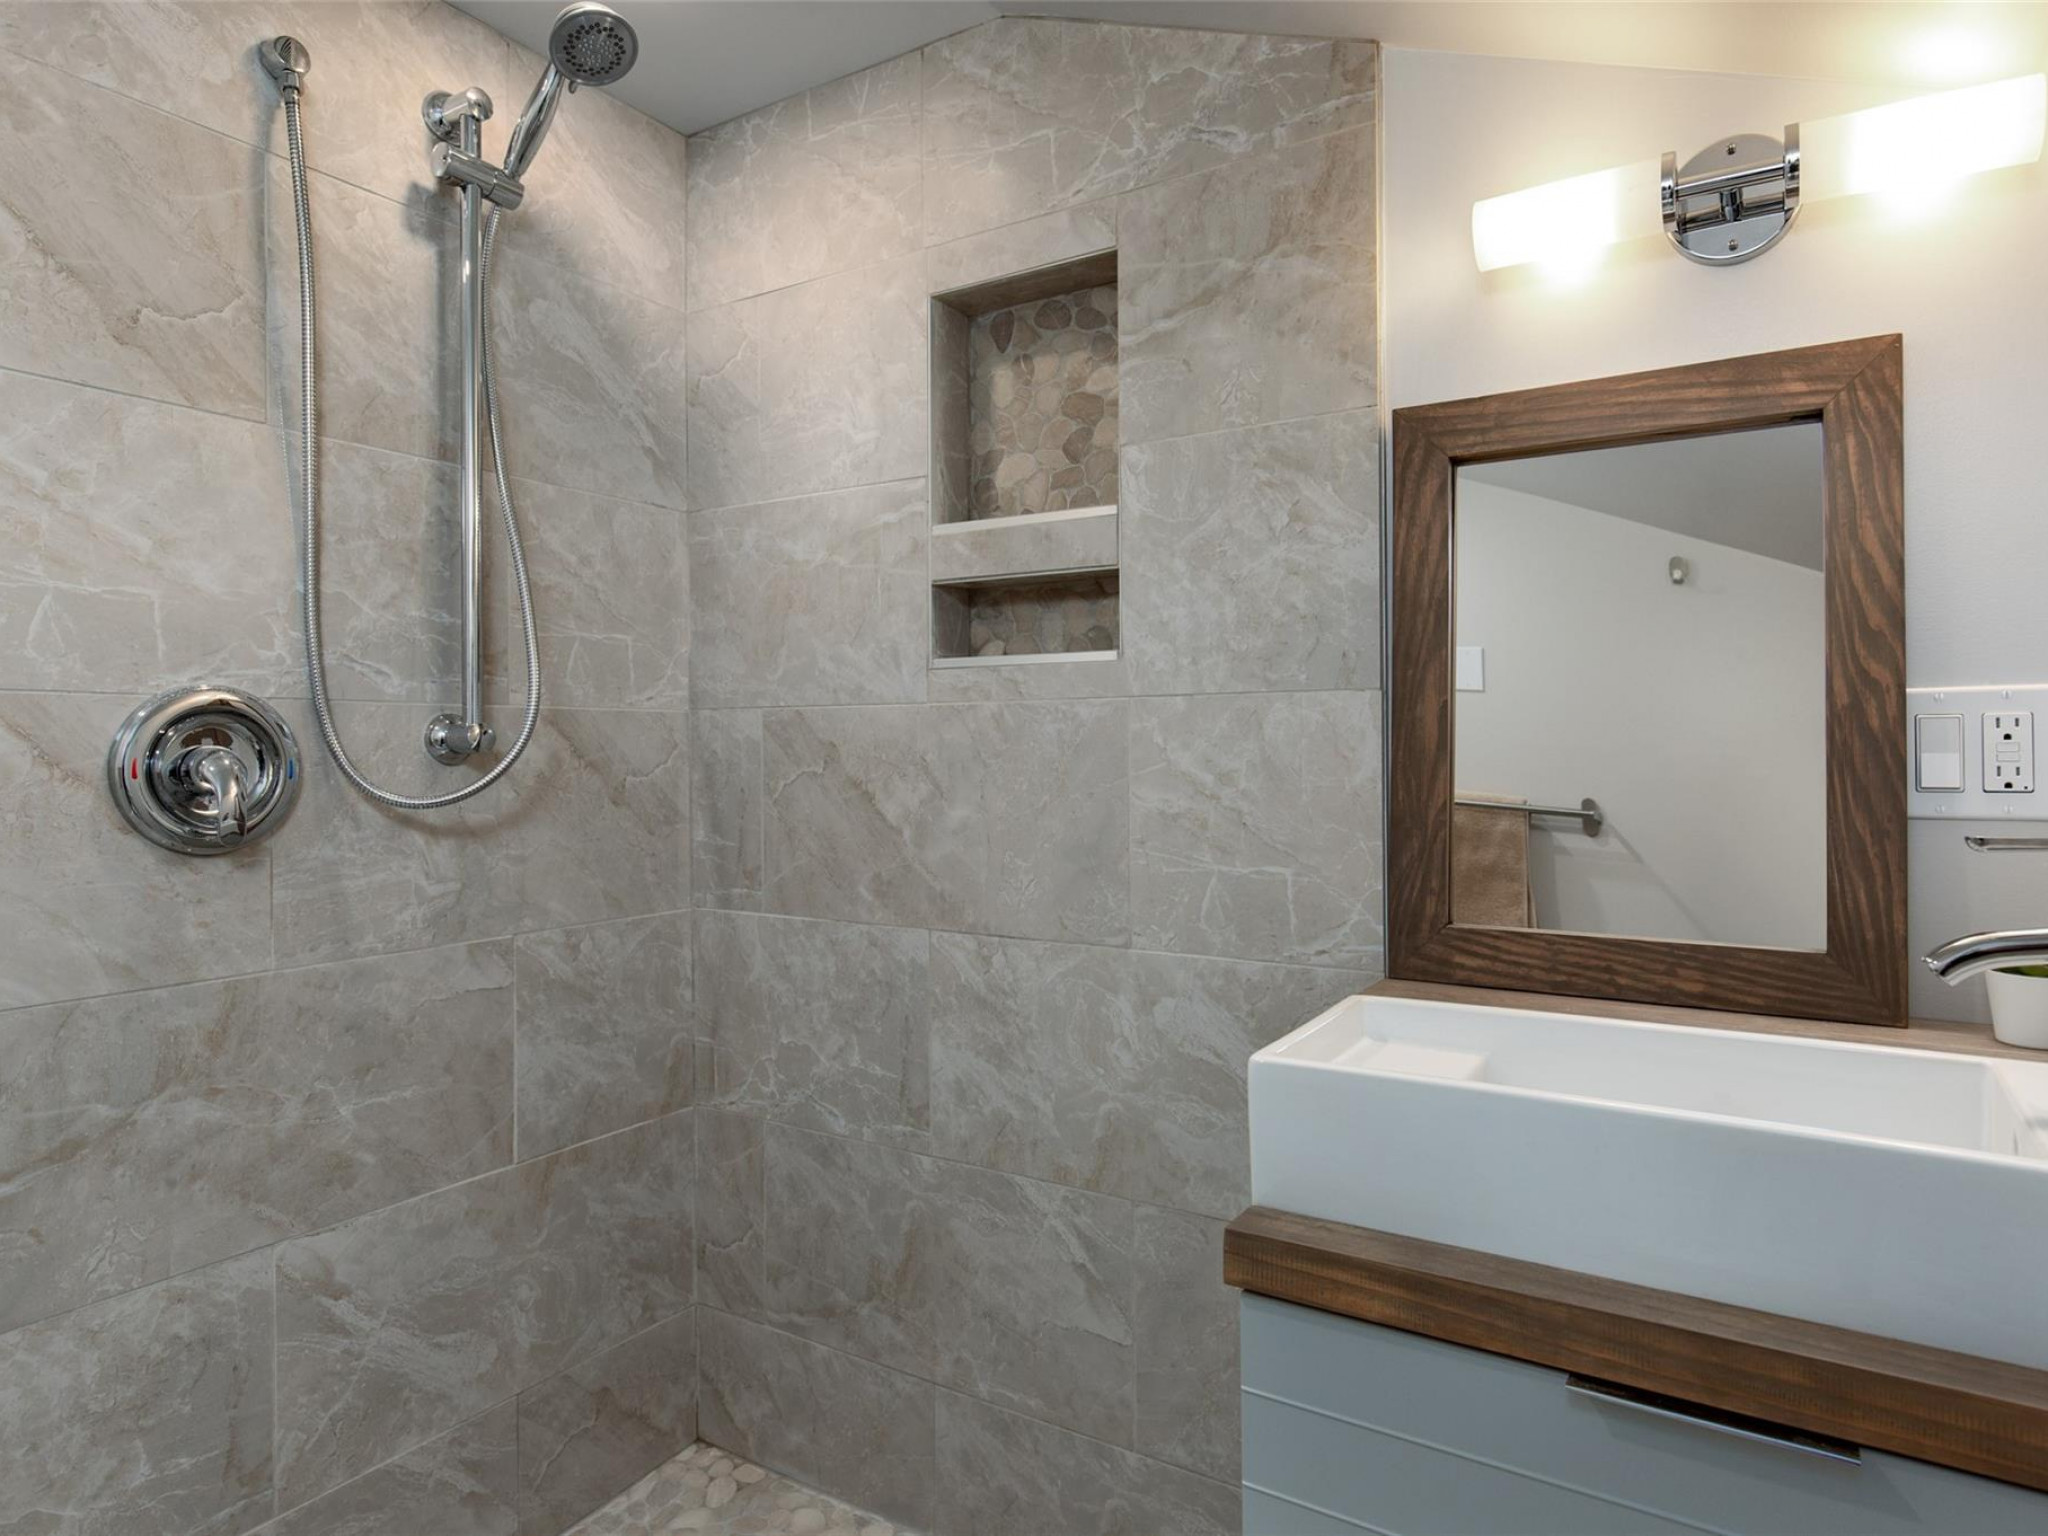 7348 Clover Road image 23